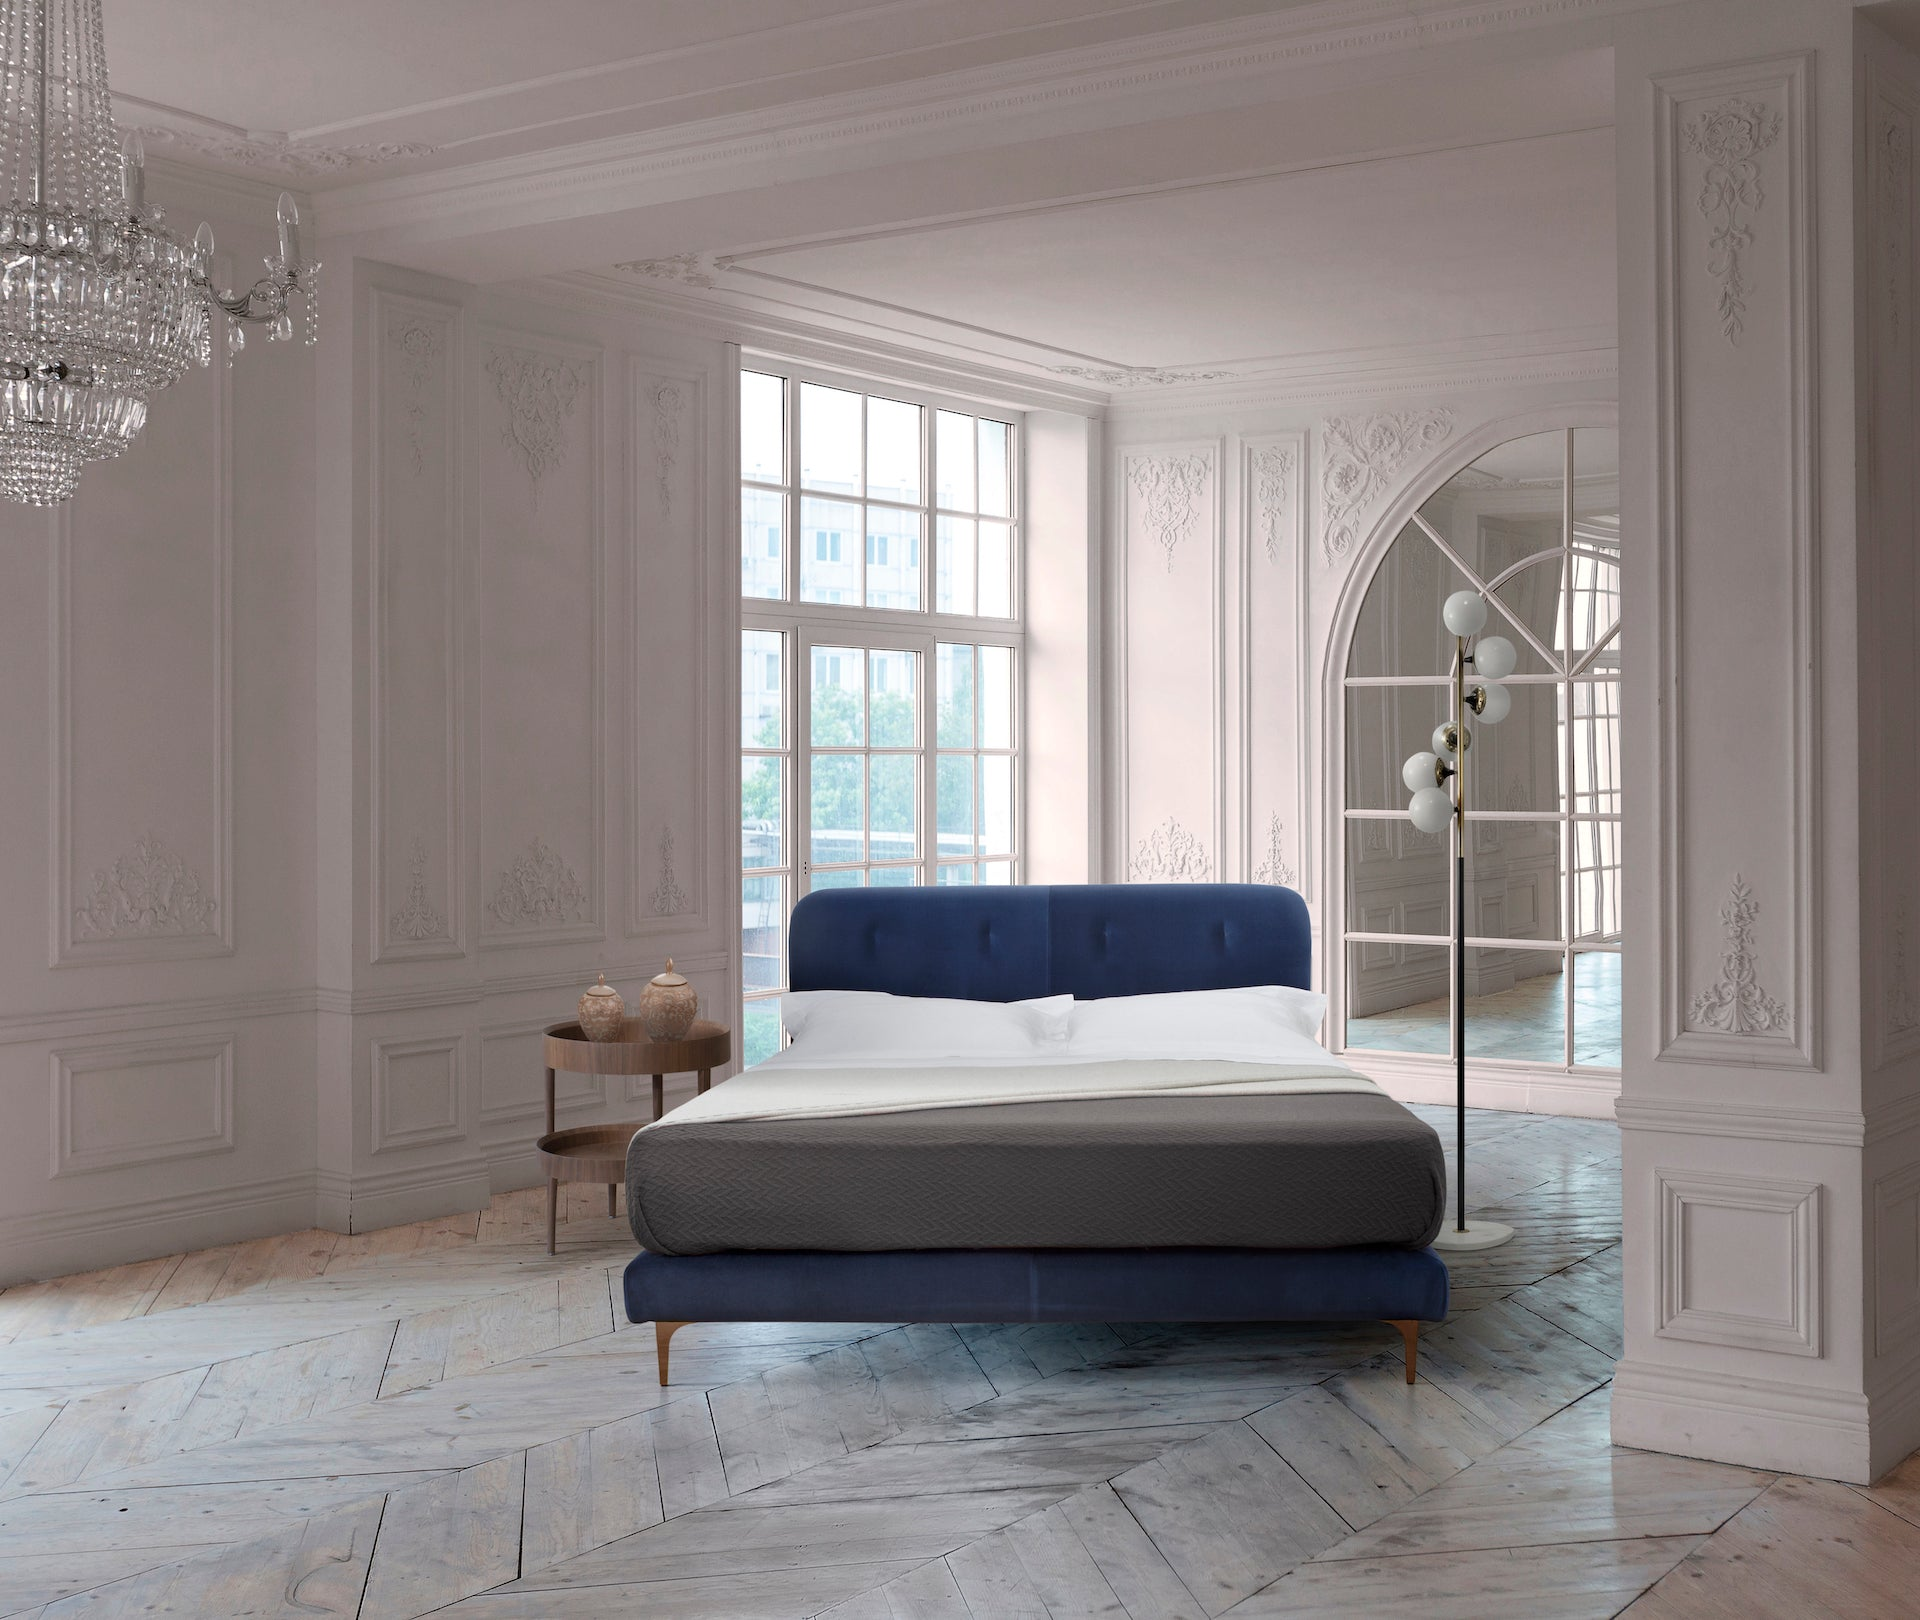 Luxury and precious elegant bed. leather headboard. Italian bed. handmade with natural materials. Made in italy.